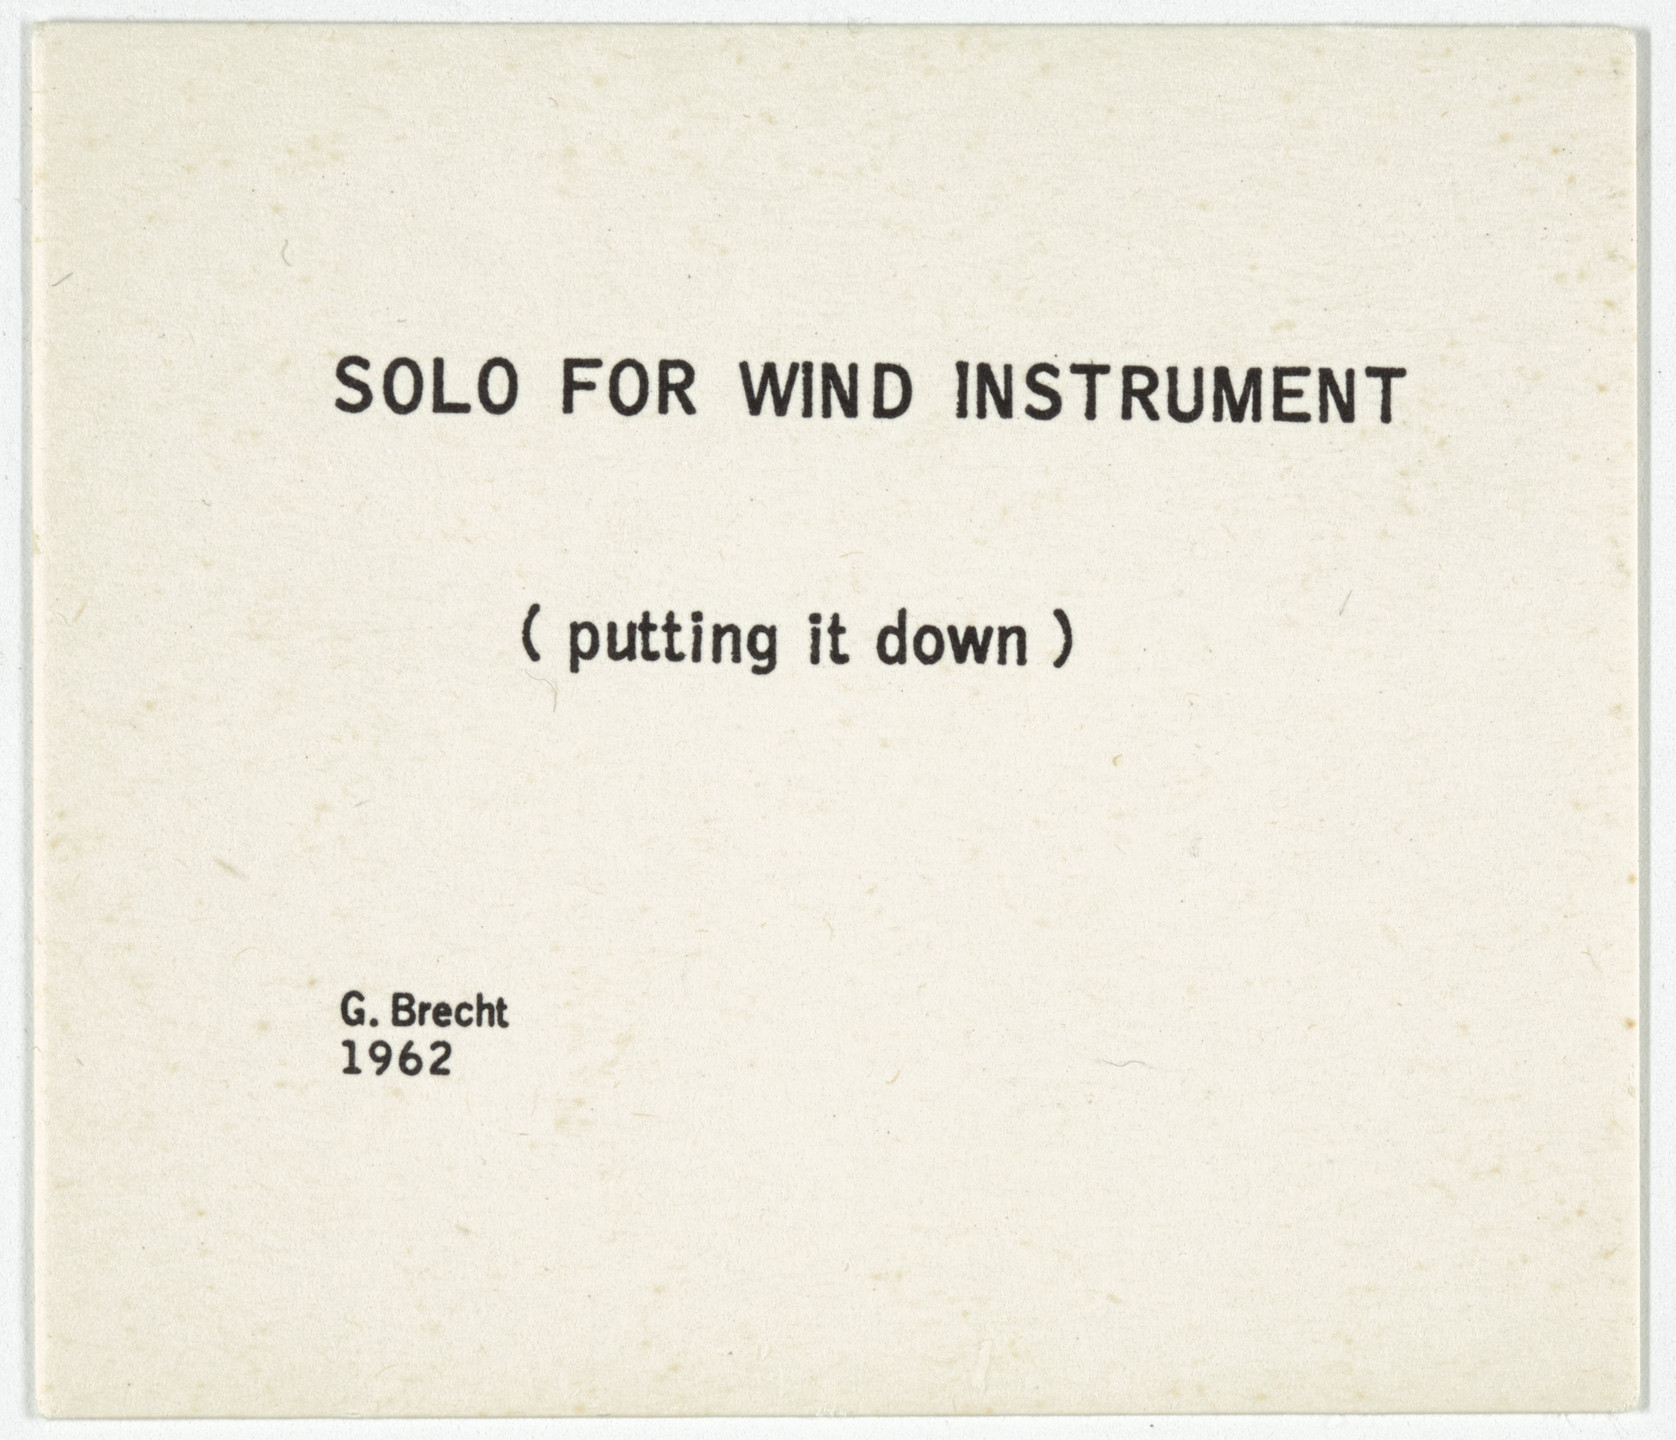 George Brecht. Solo for Wind Instrument from Water Yam. 1963